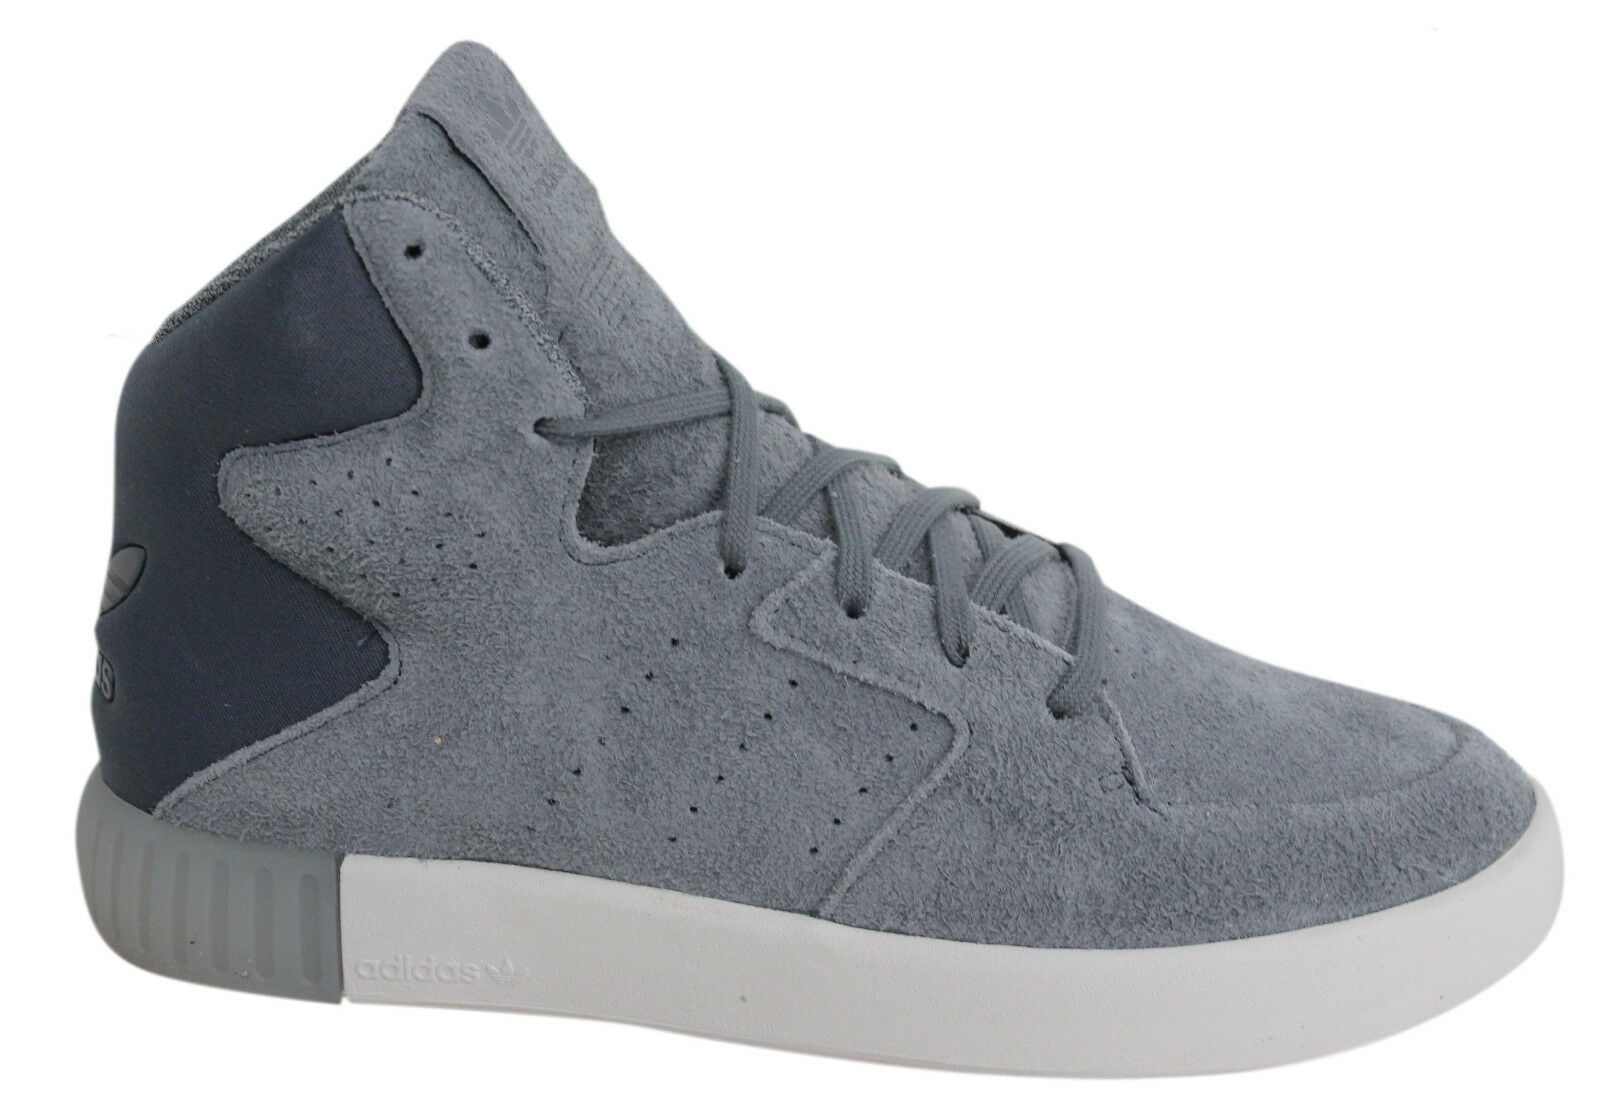 Adidas Originals Invader 2.0 Femme Lace Leather Up  Gris  Leather Lace Trainers S80557 U43 97a433